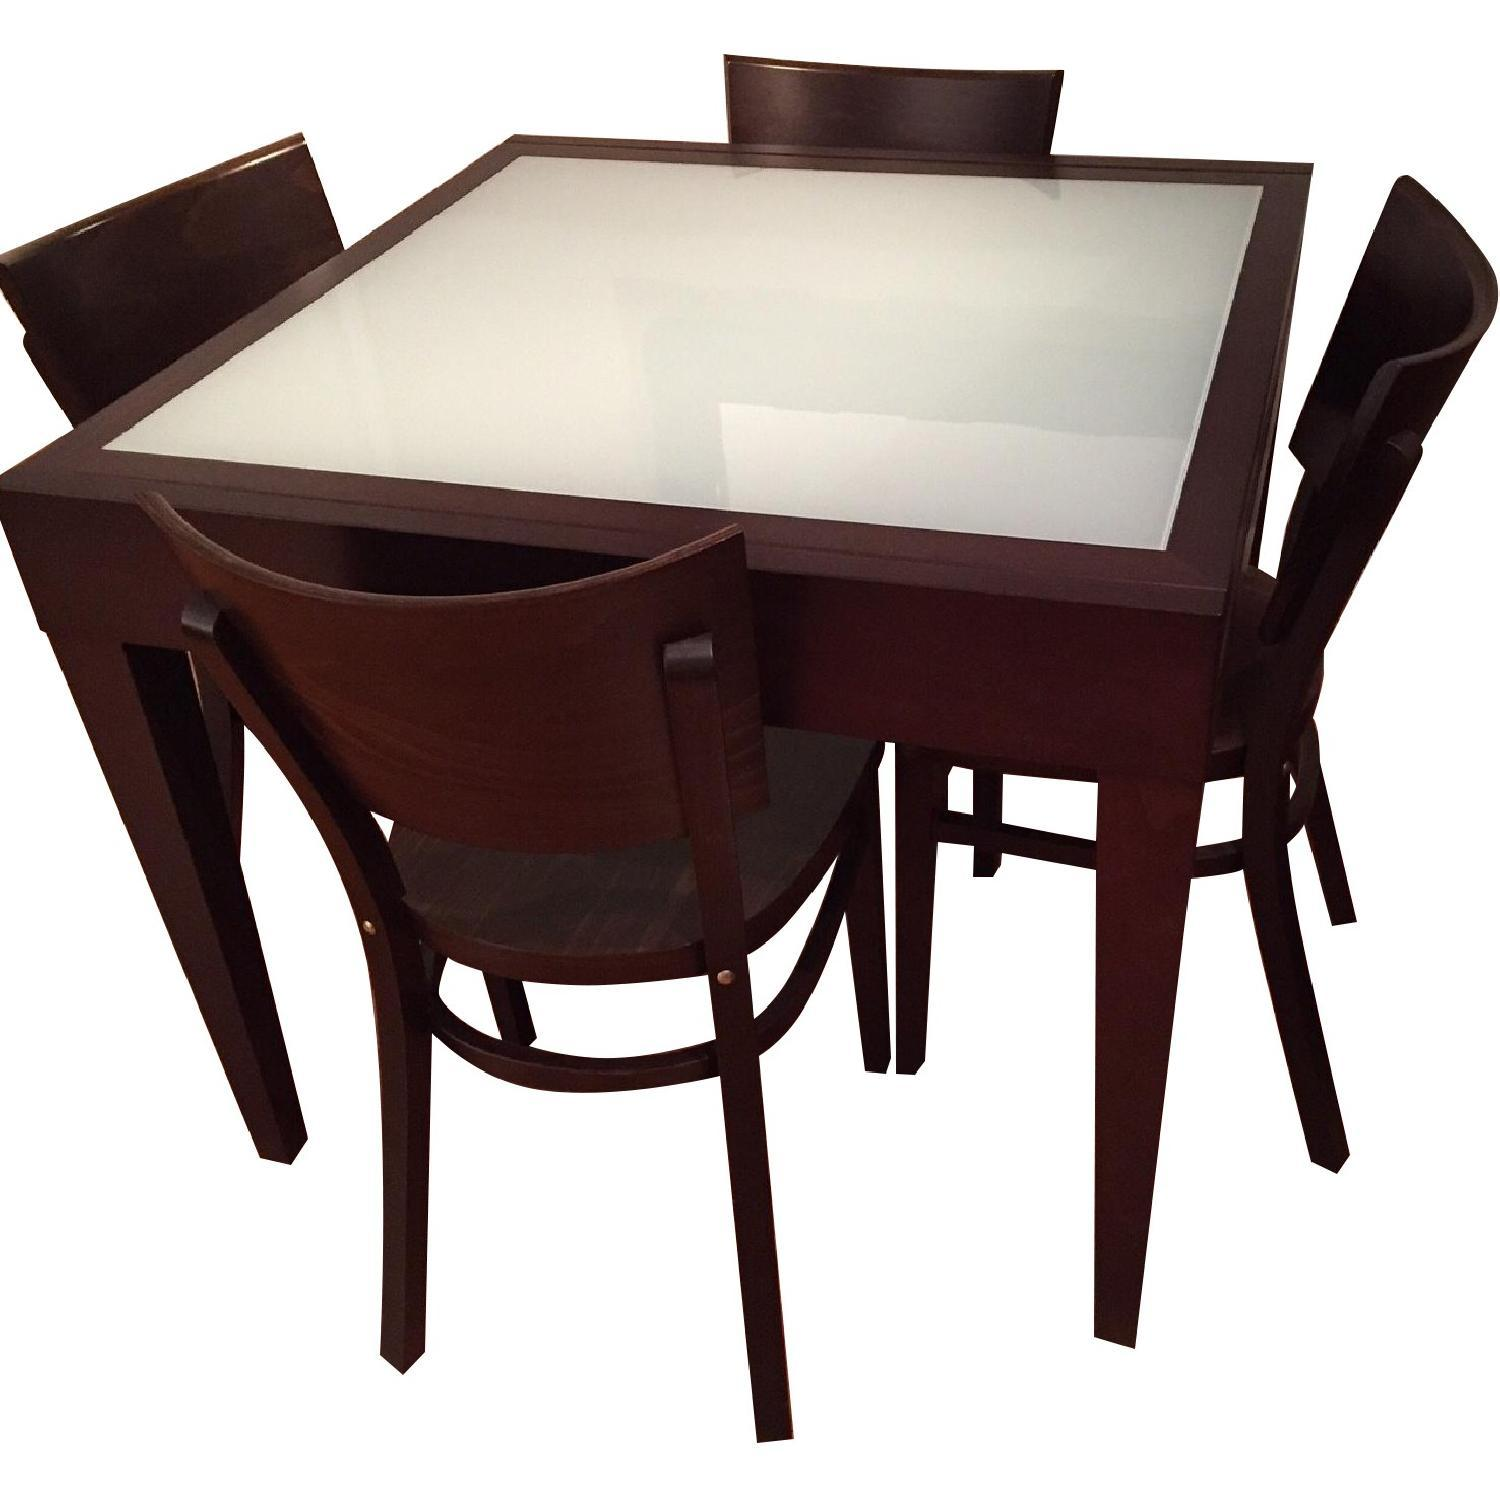 Chairs design within reach - Image Of Design Within Reach Modern Dining Set